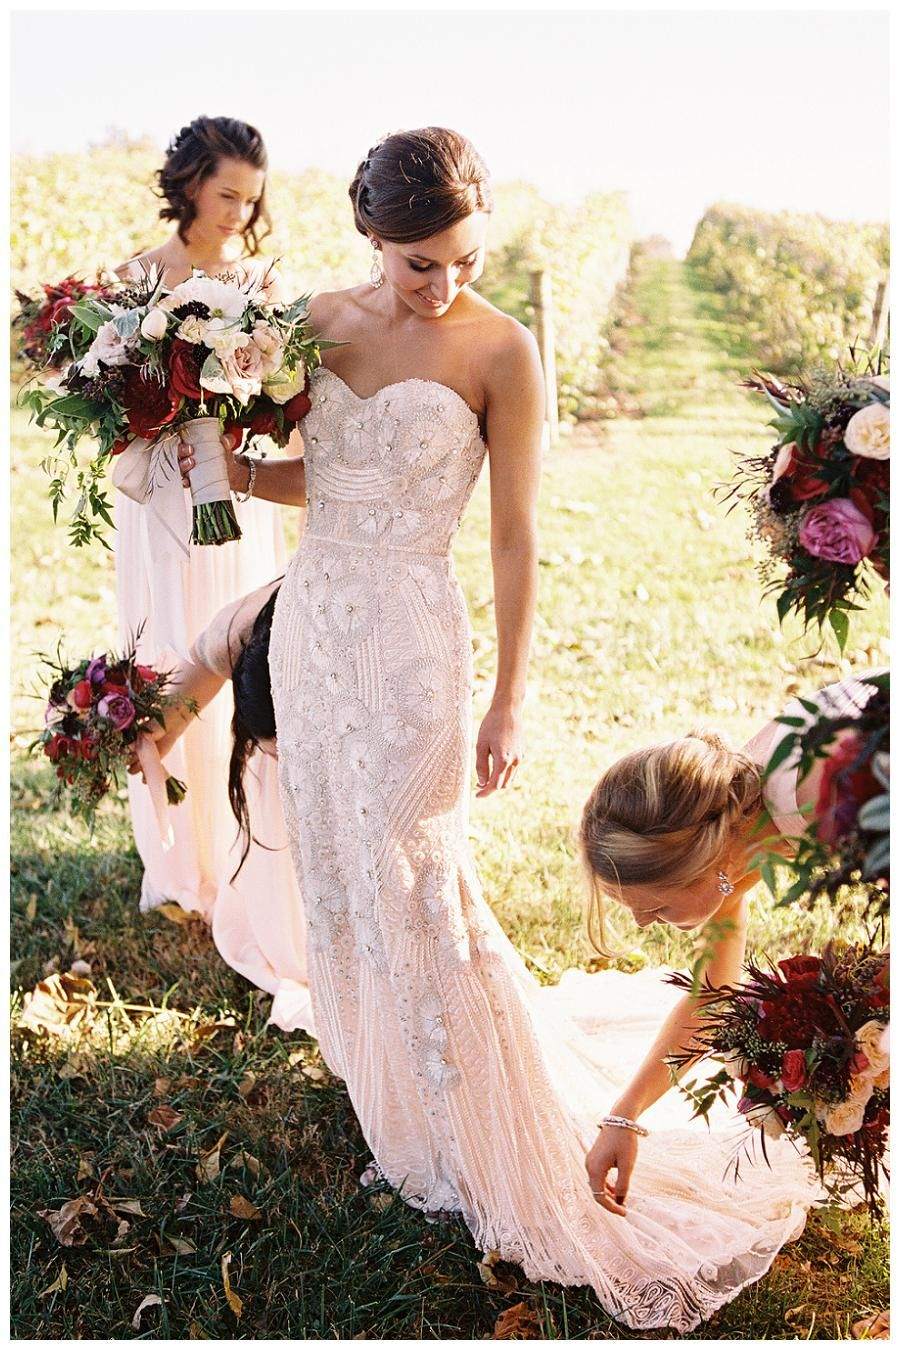 Pink lace wedding dress  Bride in an exquisite wedding dress by Naeem Khan with a stunning